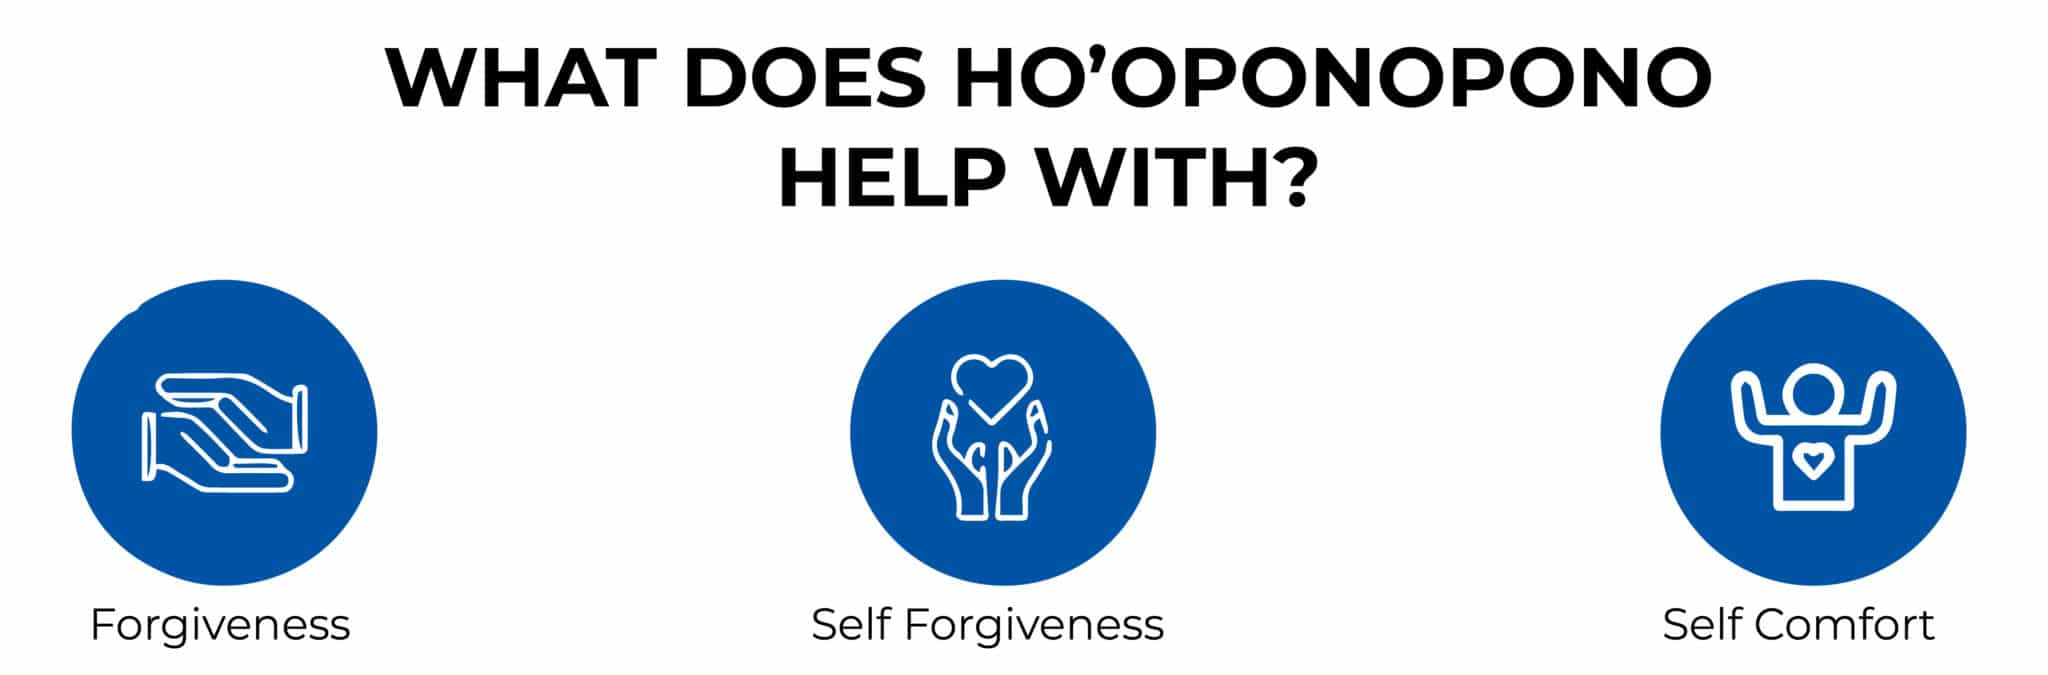 WHAT DOES HO'OPONOPONO HELP WITH